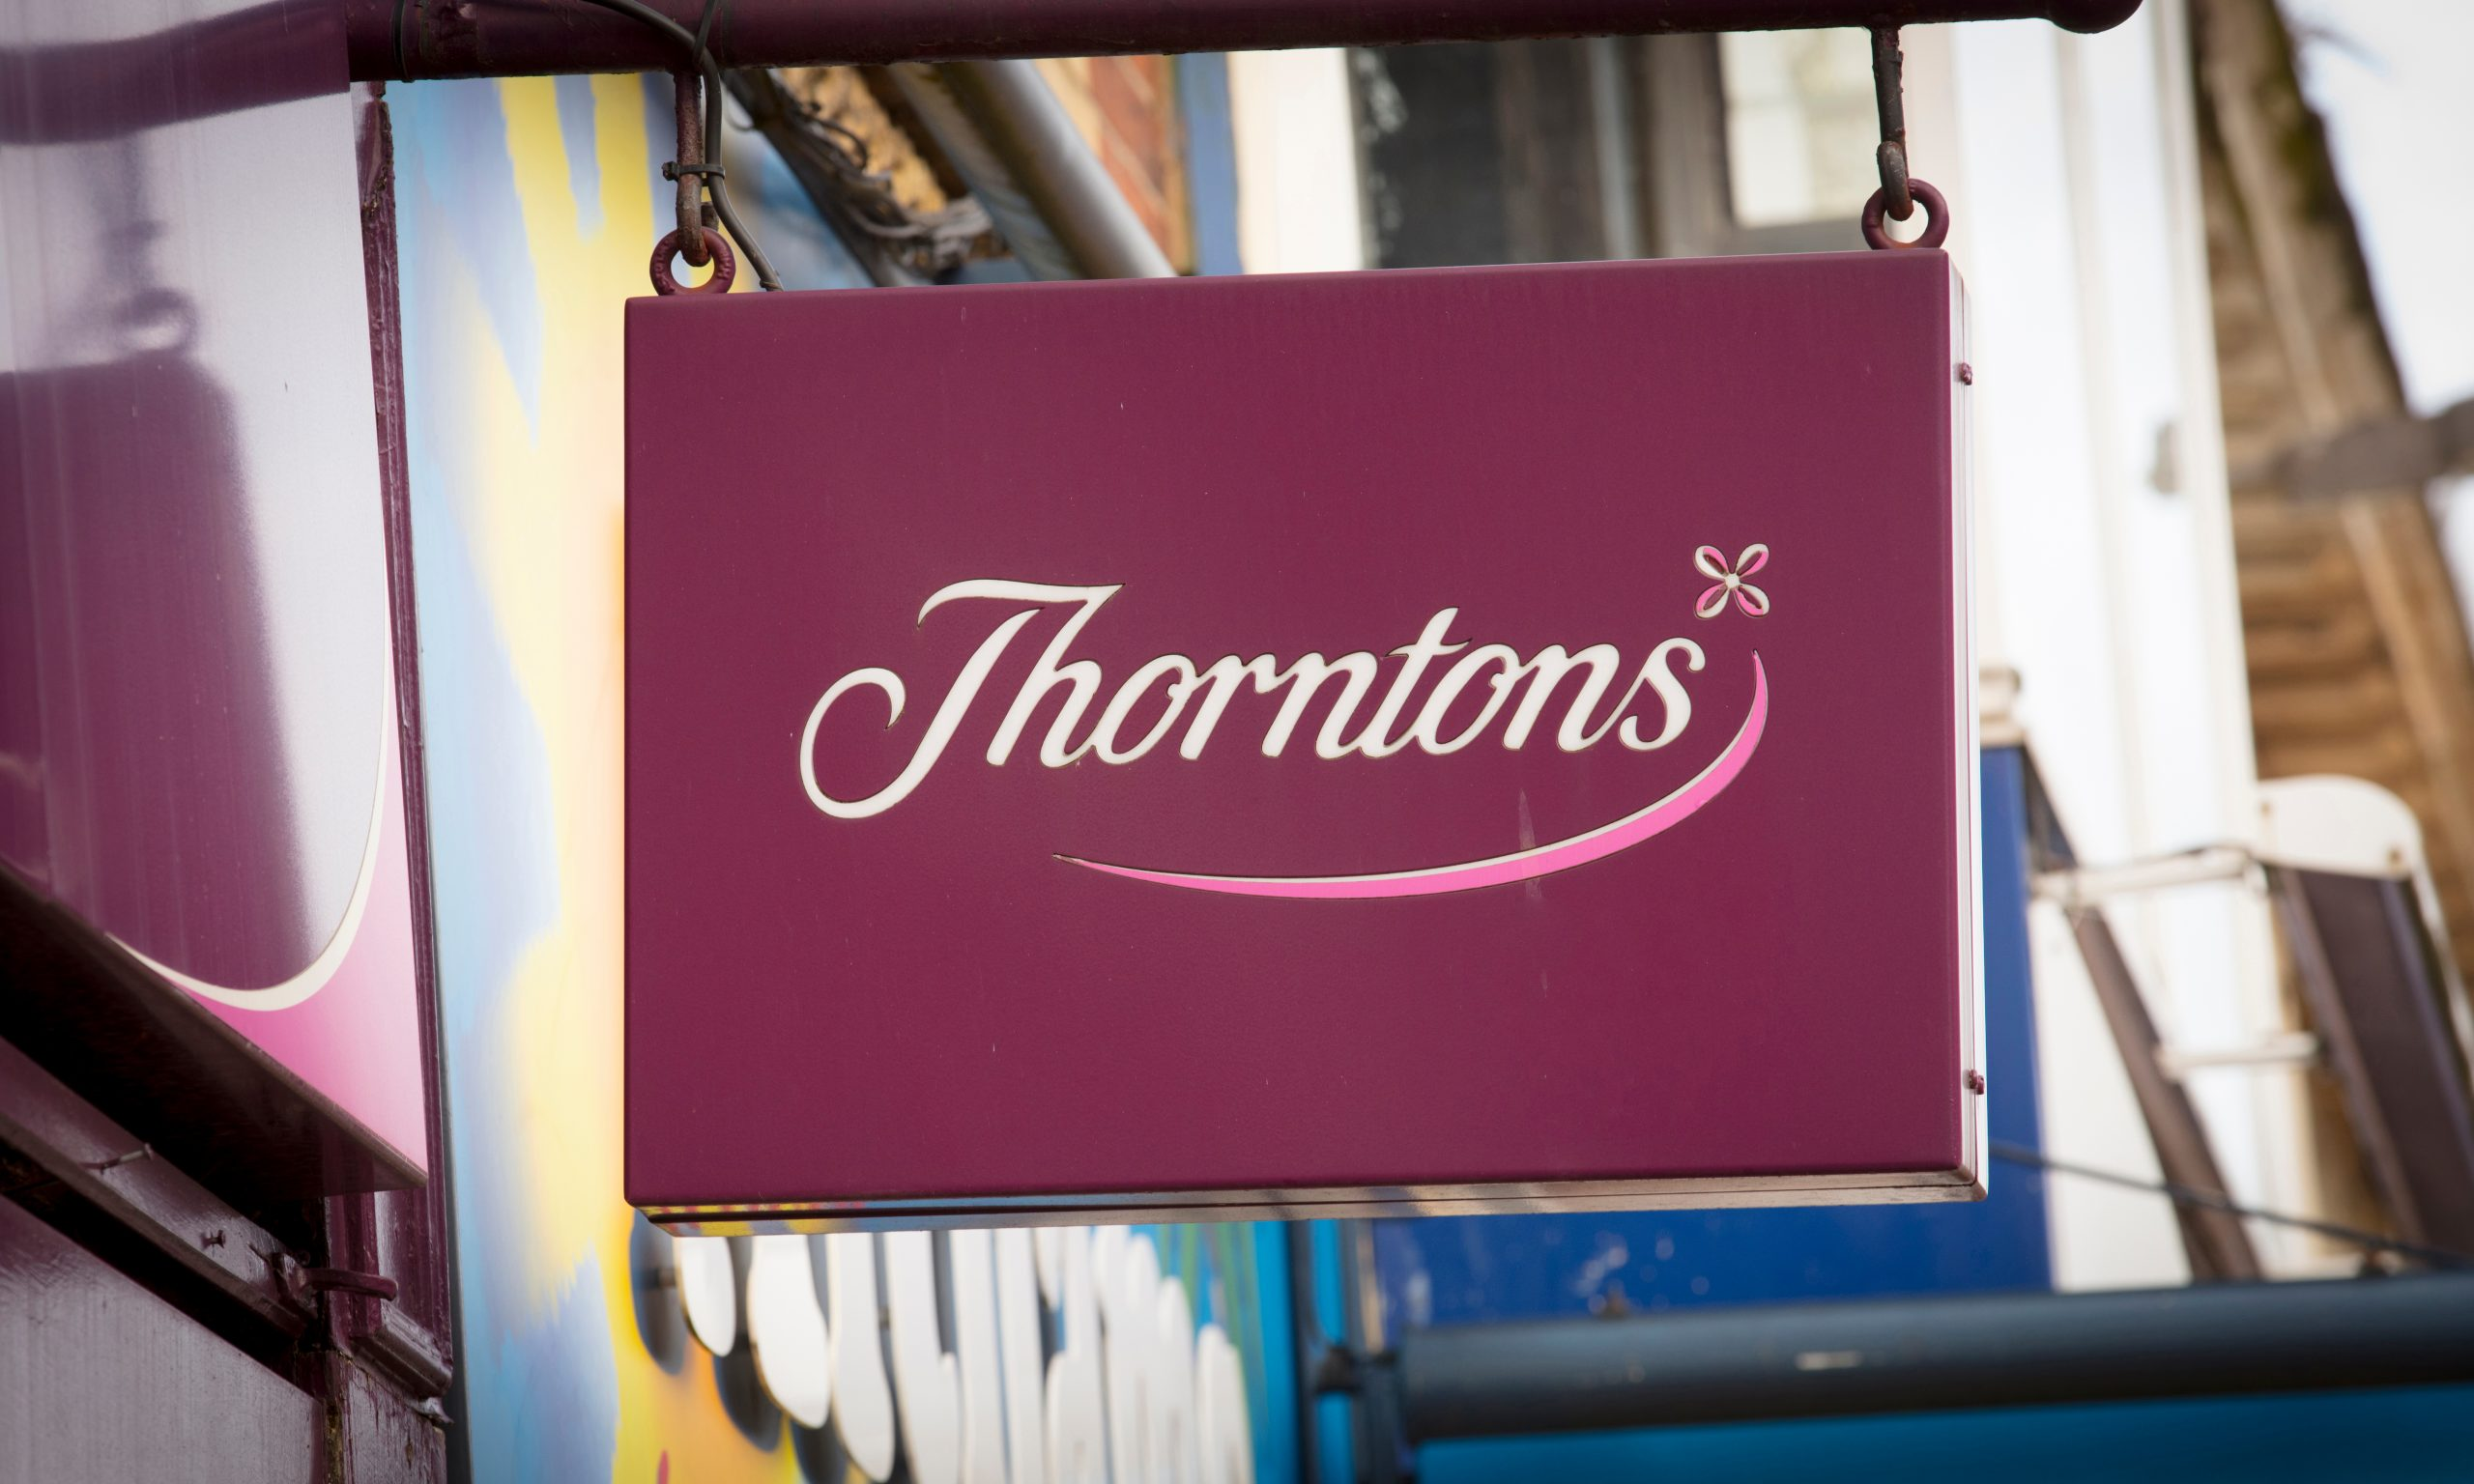 Sad news from Thorntons – 61 stores to close, 600 jobs at risk